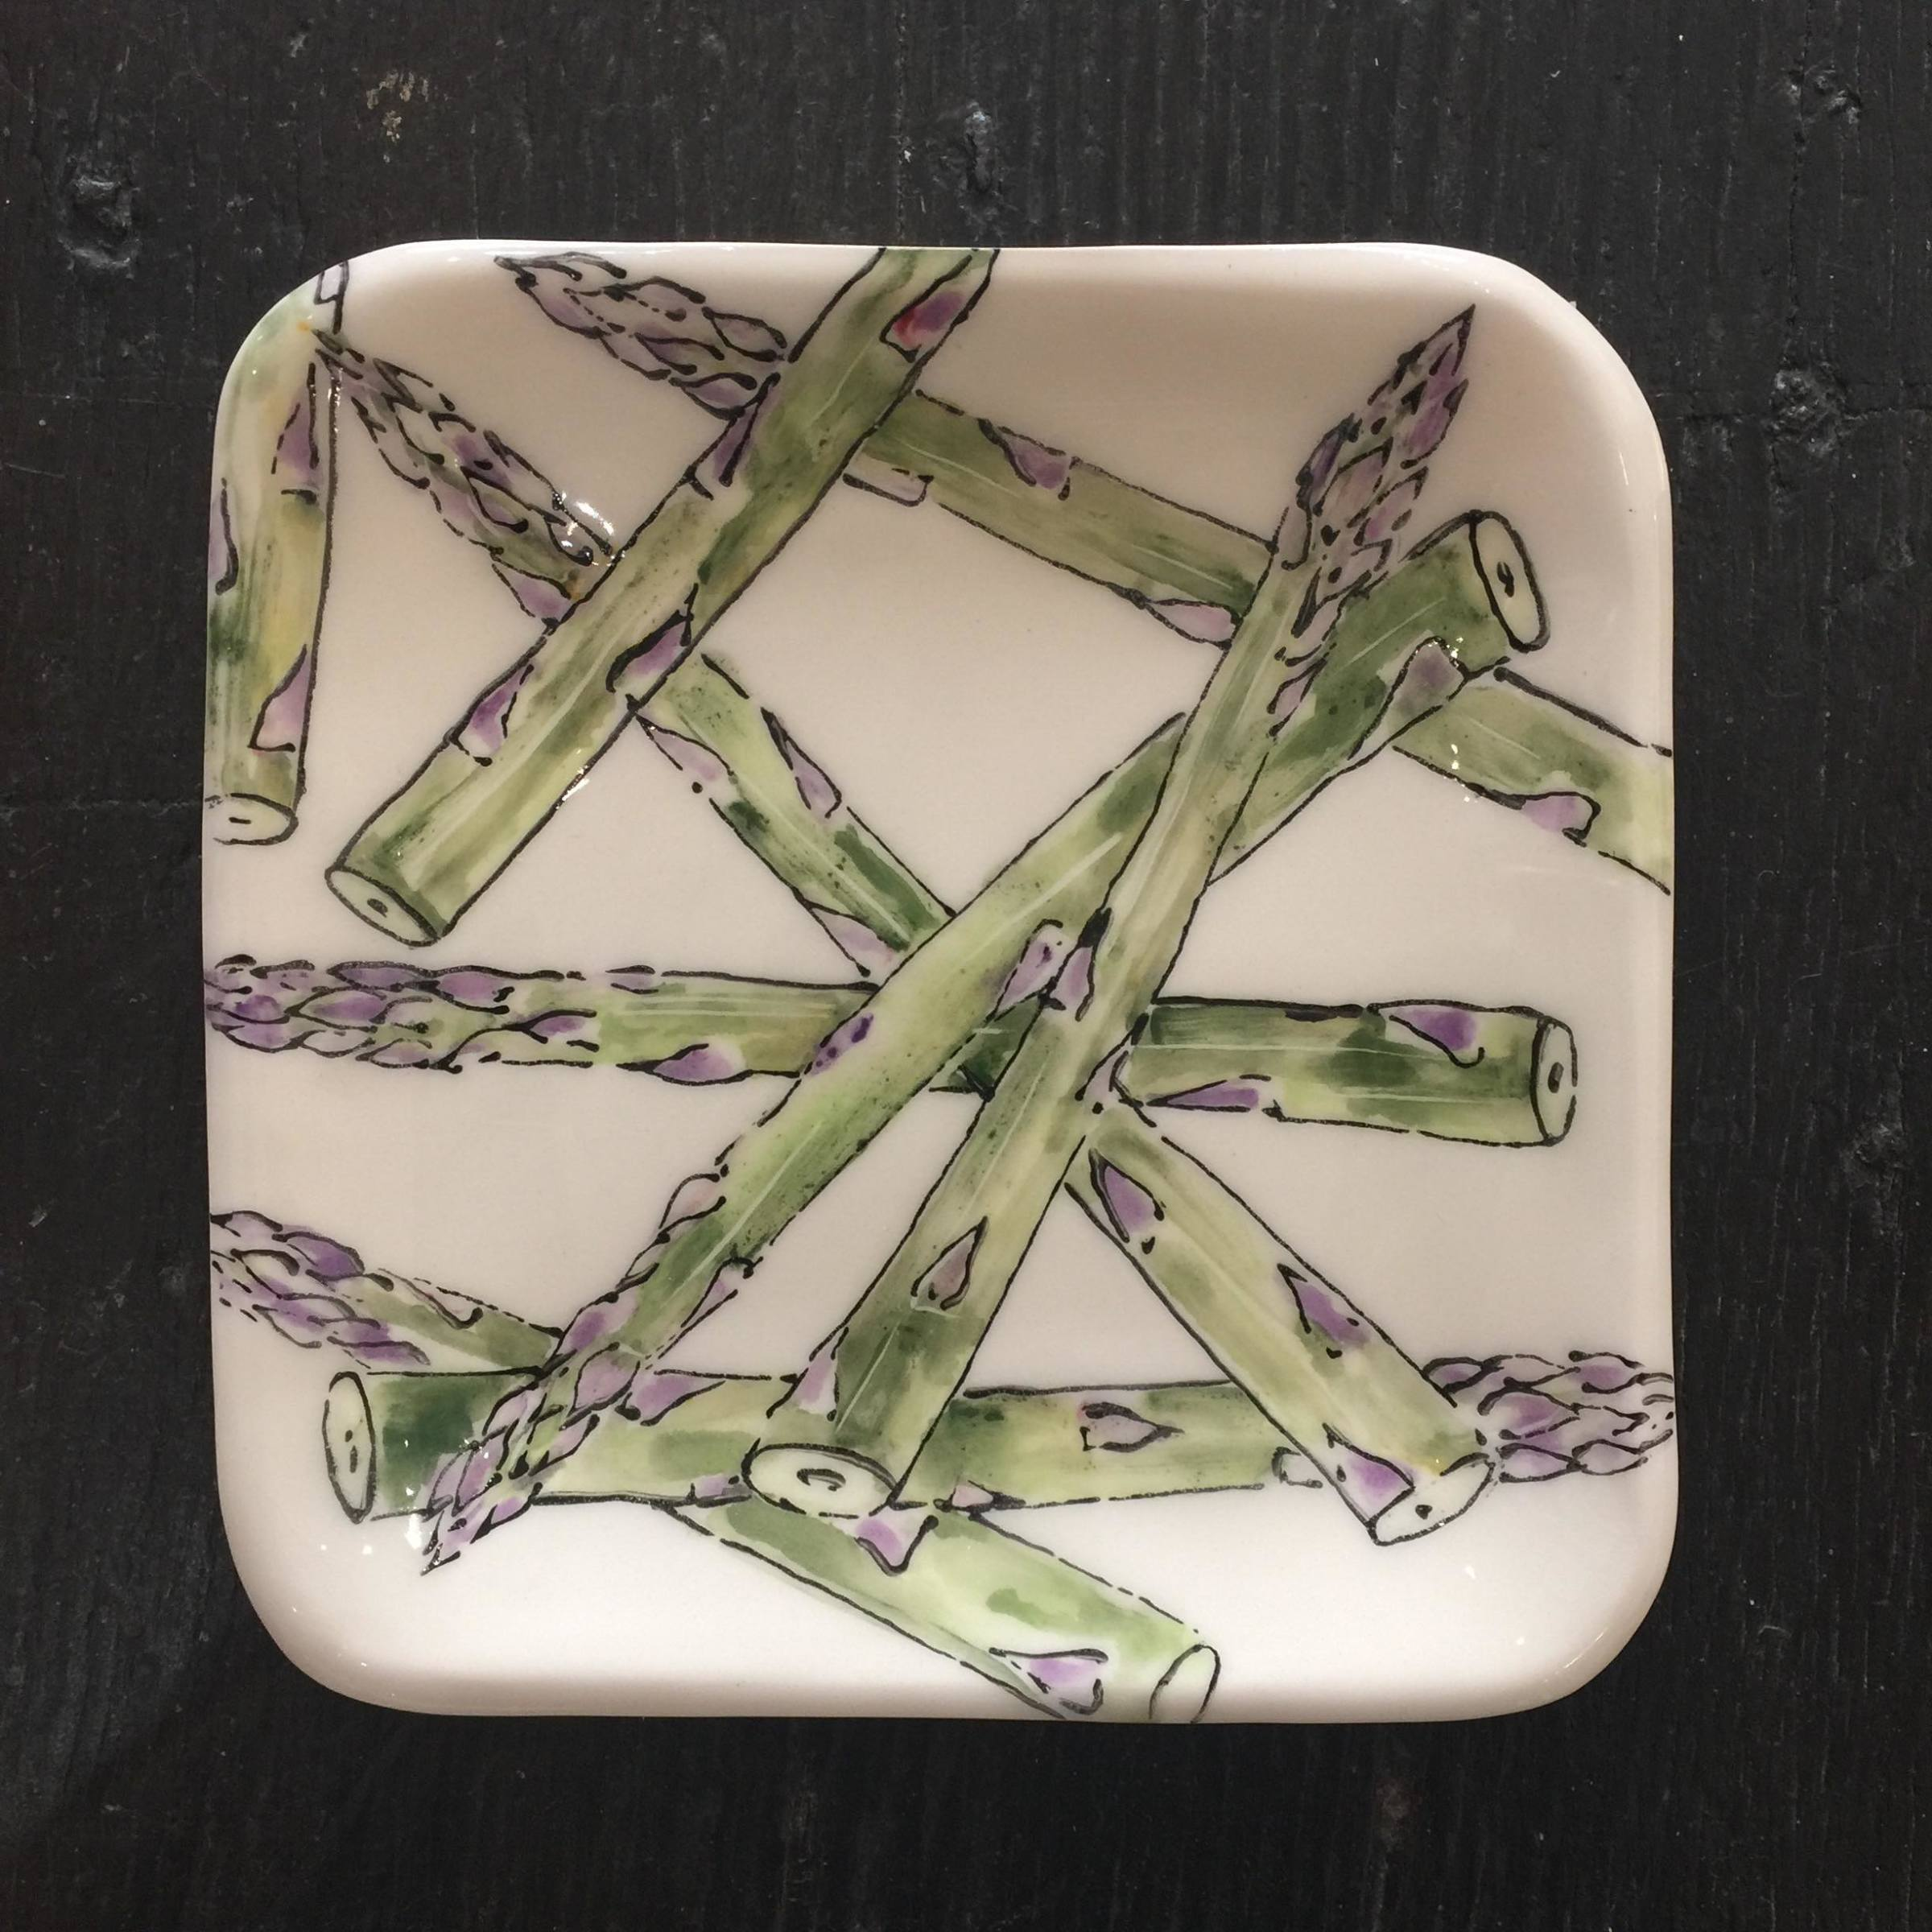 <span class=&#34;link fancybox-details-link&#34;><a href=&#34;/artists/33-kerry-edwards/works/2391-kerry-edwards-small-asparagus-dish/&#34;>View Detail Page</a></span><div class=&#34;artist&#34;><strong>Kerry Edwards</strong></div> <div class=&#34;title&#34;><em>Small Asparagus Dish</em></div> <div class=&#34;medium&#34;>Ceramic</div> <div class=&#34;dimensions&#34;>16 x 16 cm</div><div class=&#34;price&#34;>£45.00</div><div class=&#34;copyright_line&#34;>Copyright The Artist</div>